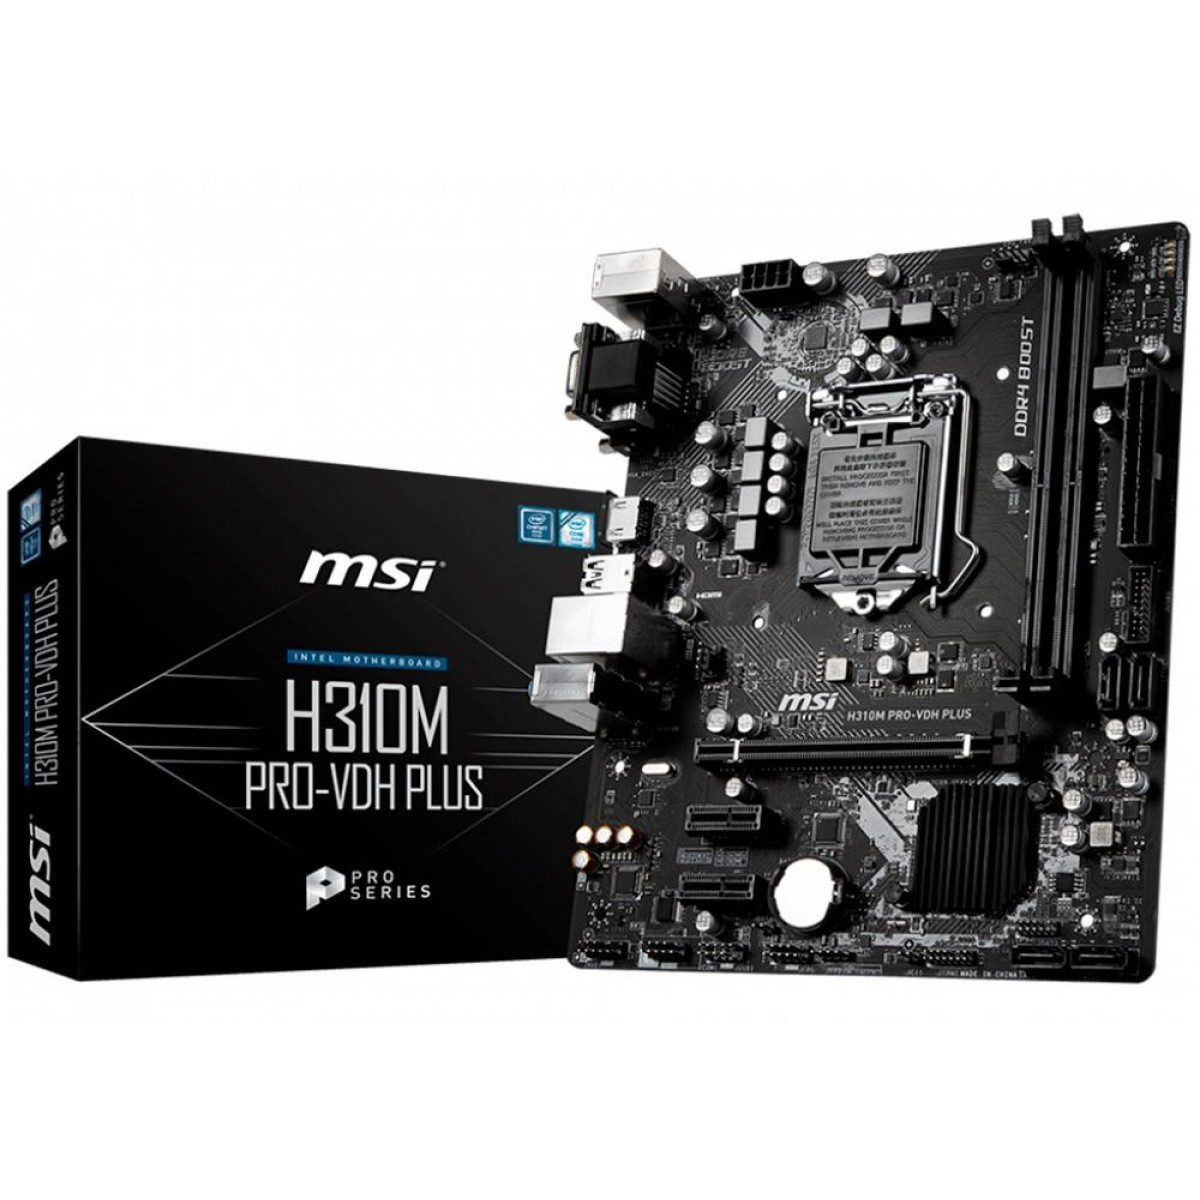 Placa Mãe MSI H310M PRO-VDH Plus, Chipset H310, Intel LGA 1151, mATX, DDR4